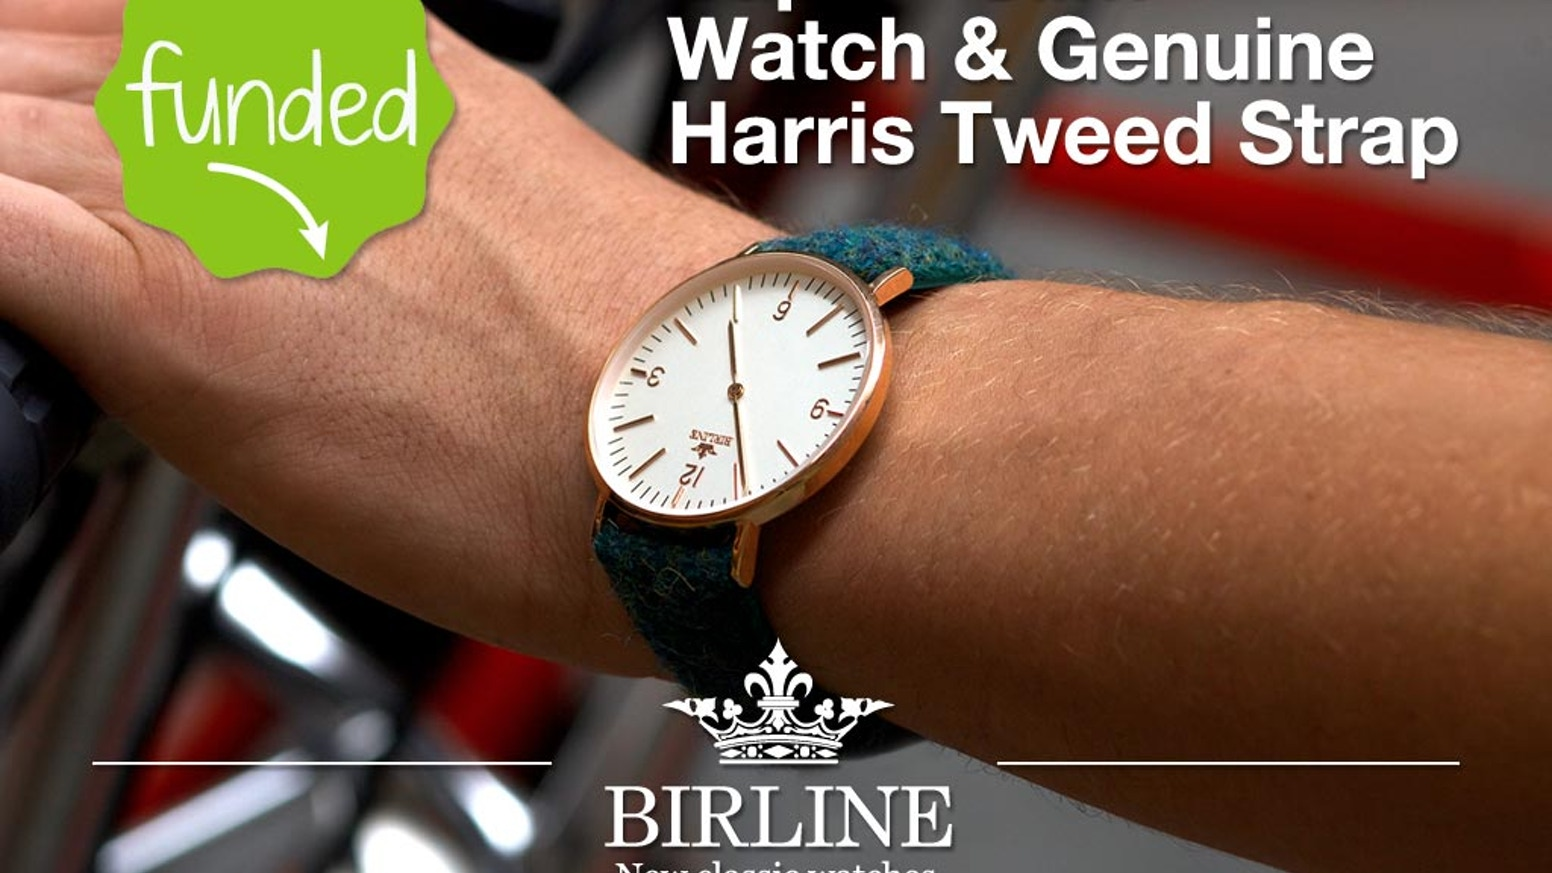 59922cca7 Thin and minimal watches with Harris Tweed straps in 18 different colors  and Swiss movement. Premium materials. FREE Worldwide shipping